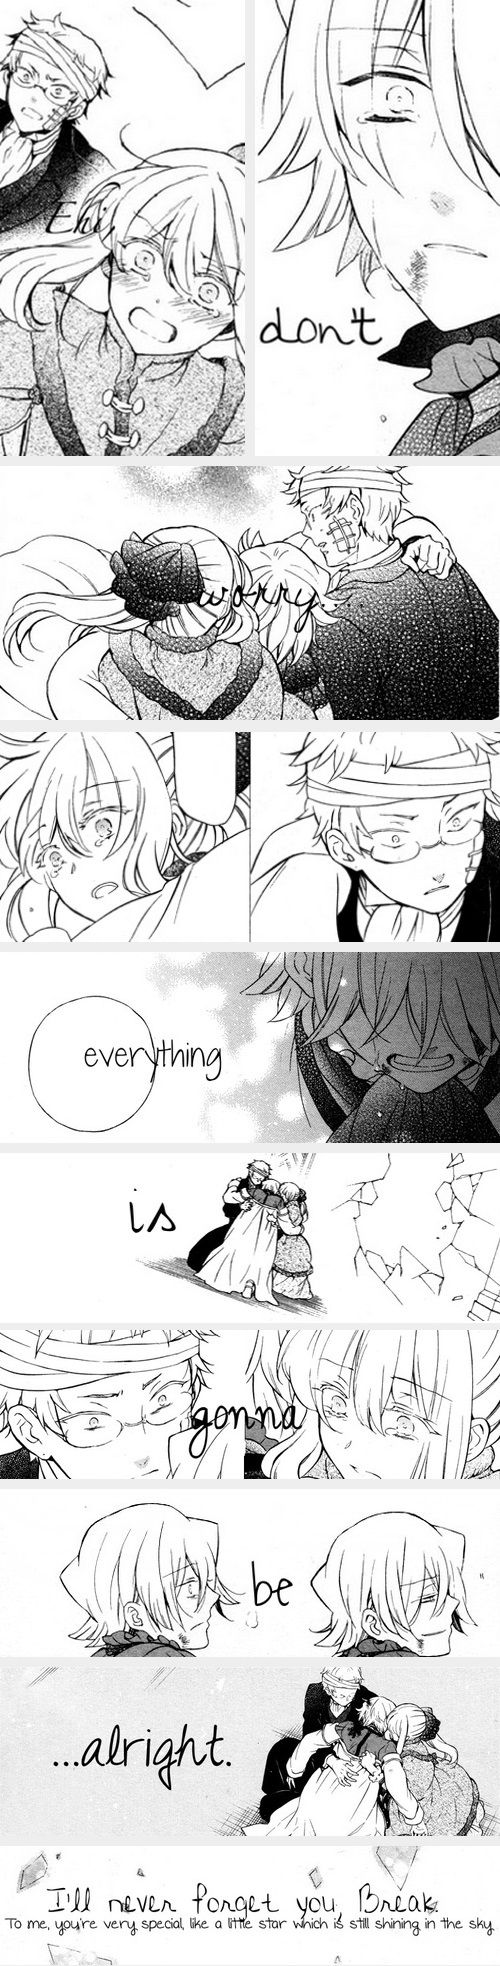 """""""Don't worry; everything is gonna be alright."""" 